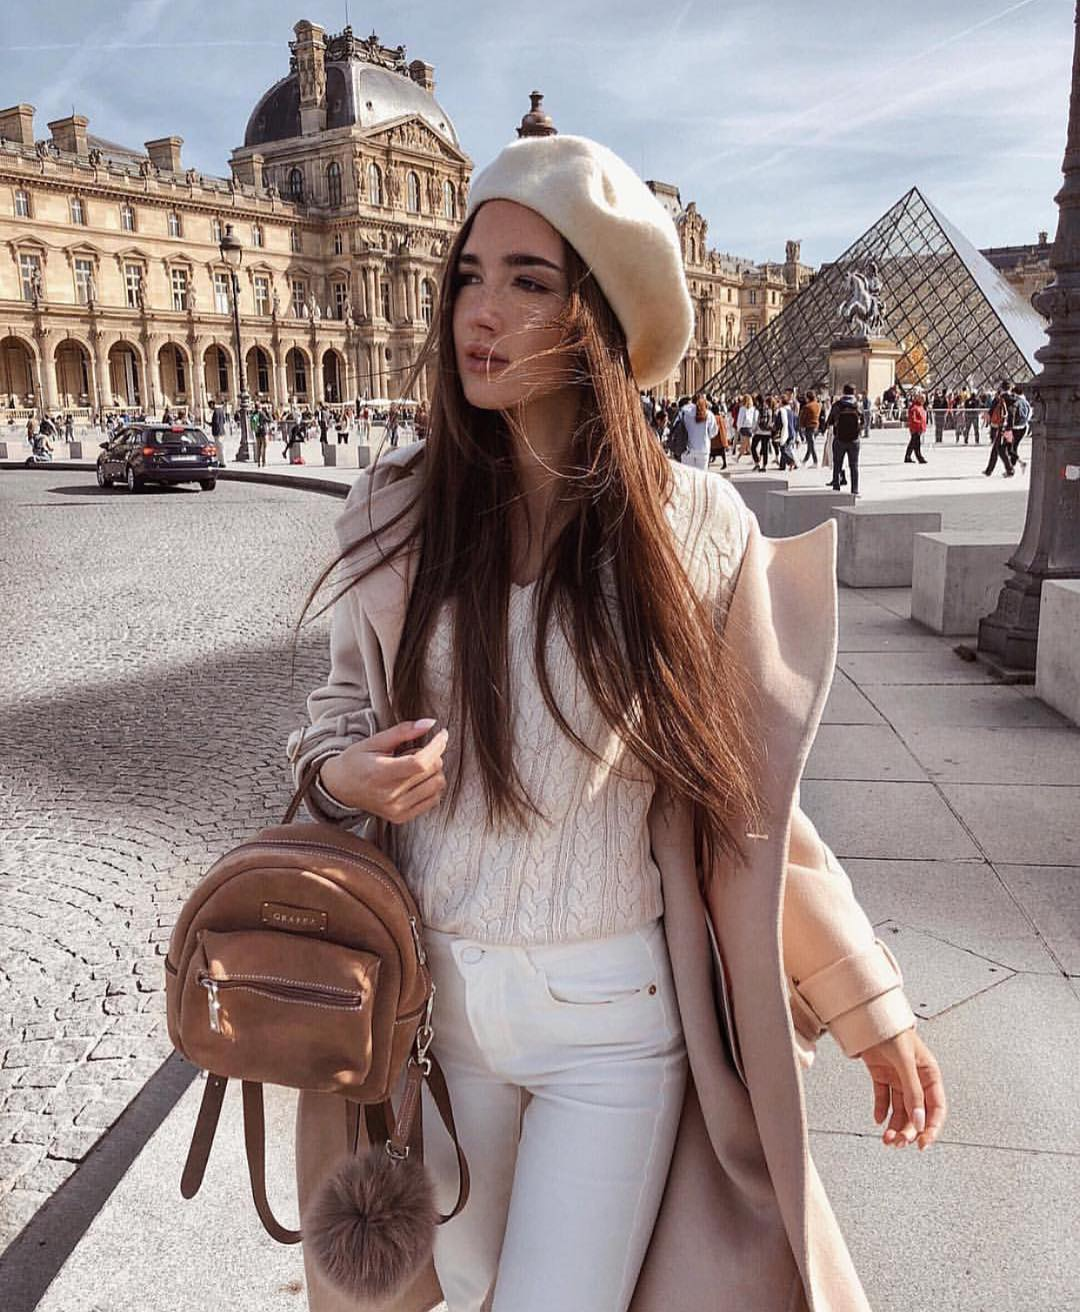 Parisian Chic Outfit For Autumn: Beret Hat, Cream Coat And White Sweater 2020